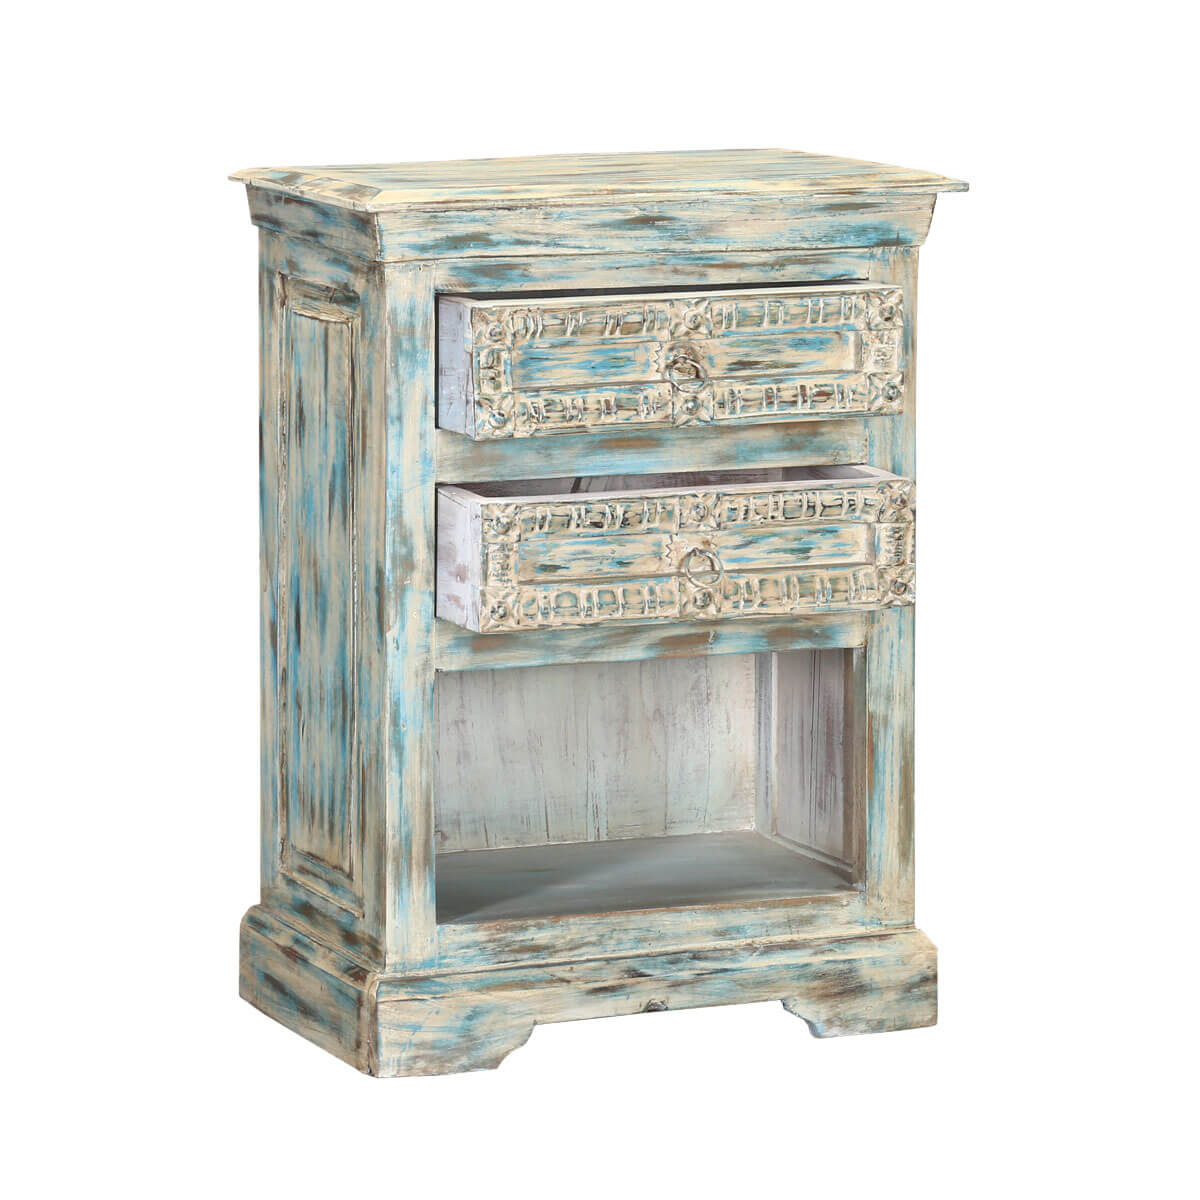 Waterfall blue reclaimed wood hand carved nightstand end table for Waterfall design nightstand